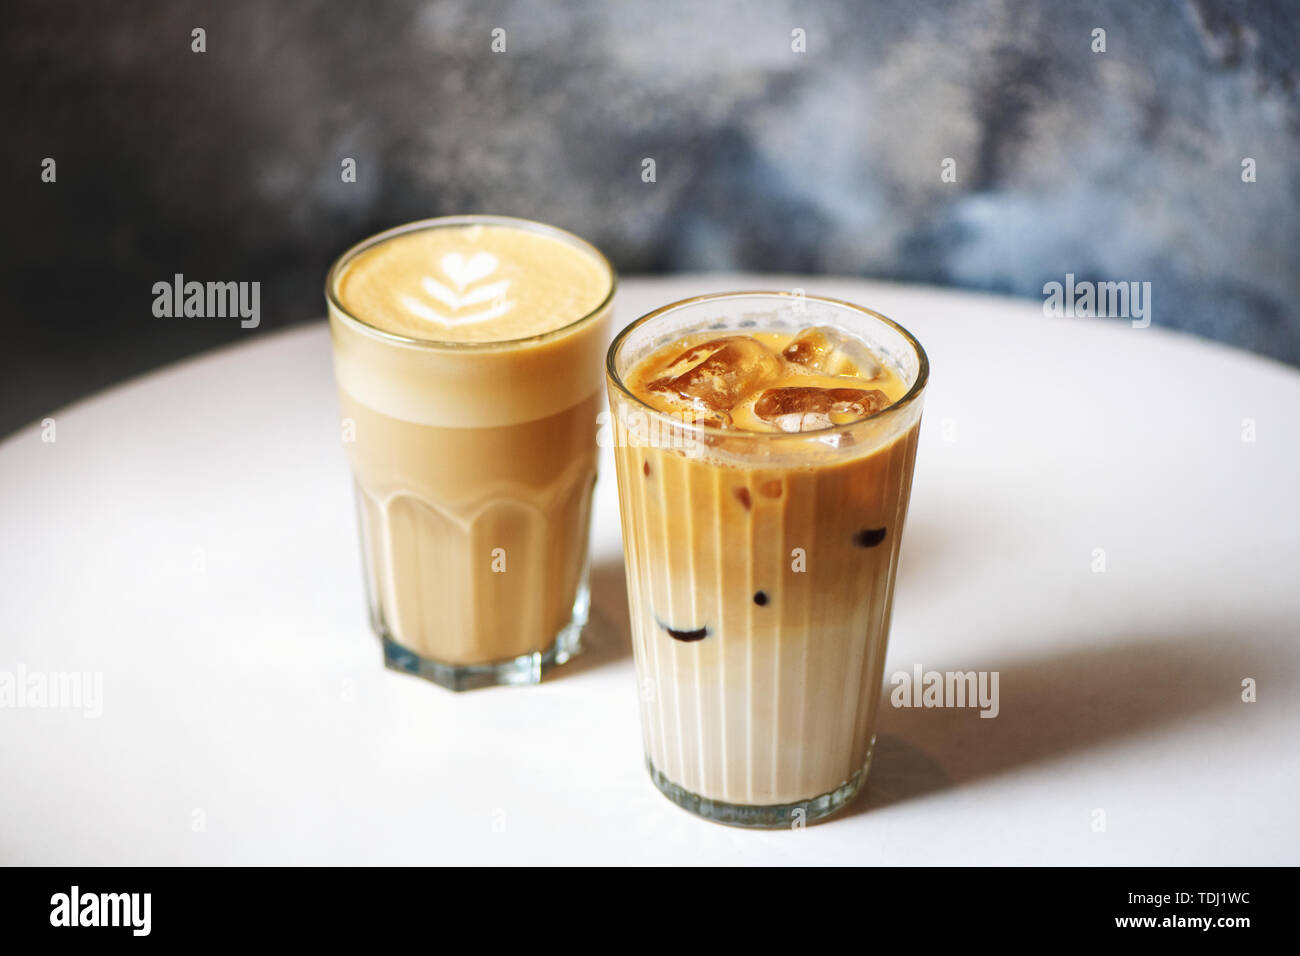 Latte And Ice Latte Coffee Glasses On White Table In Cafe Stock Photo Alamy